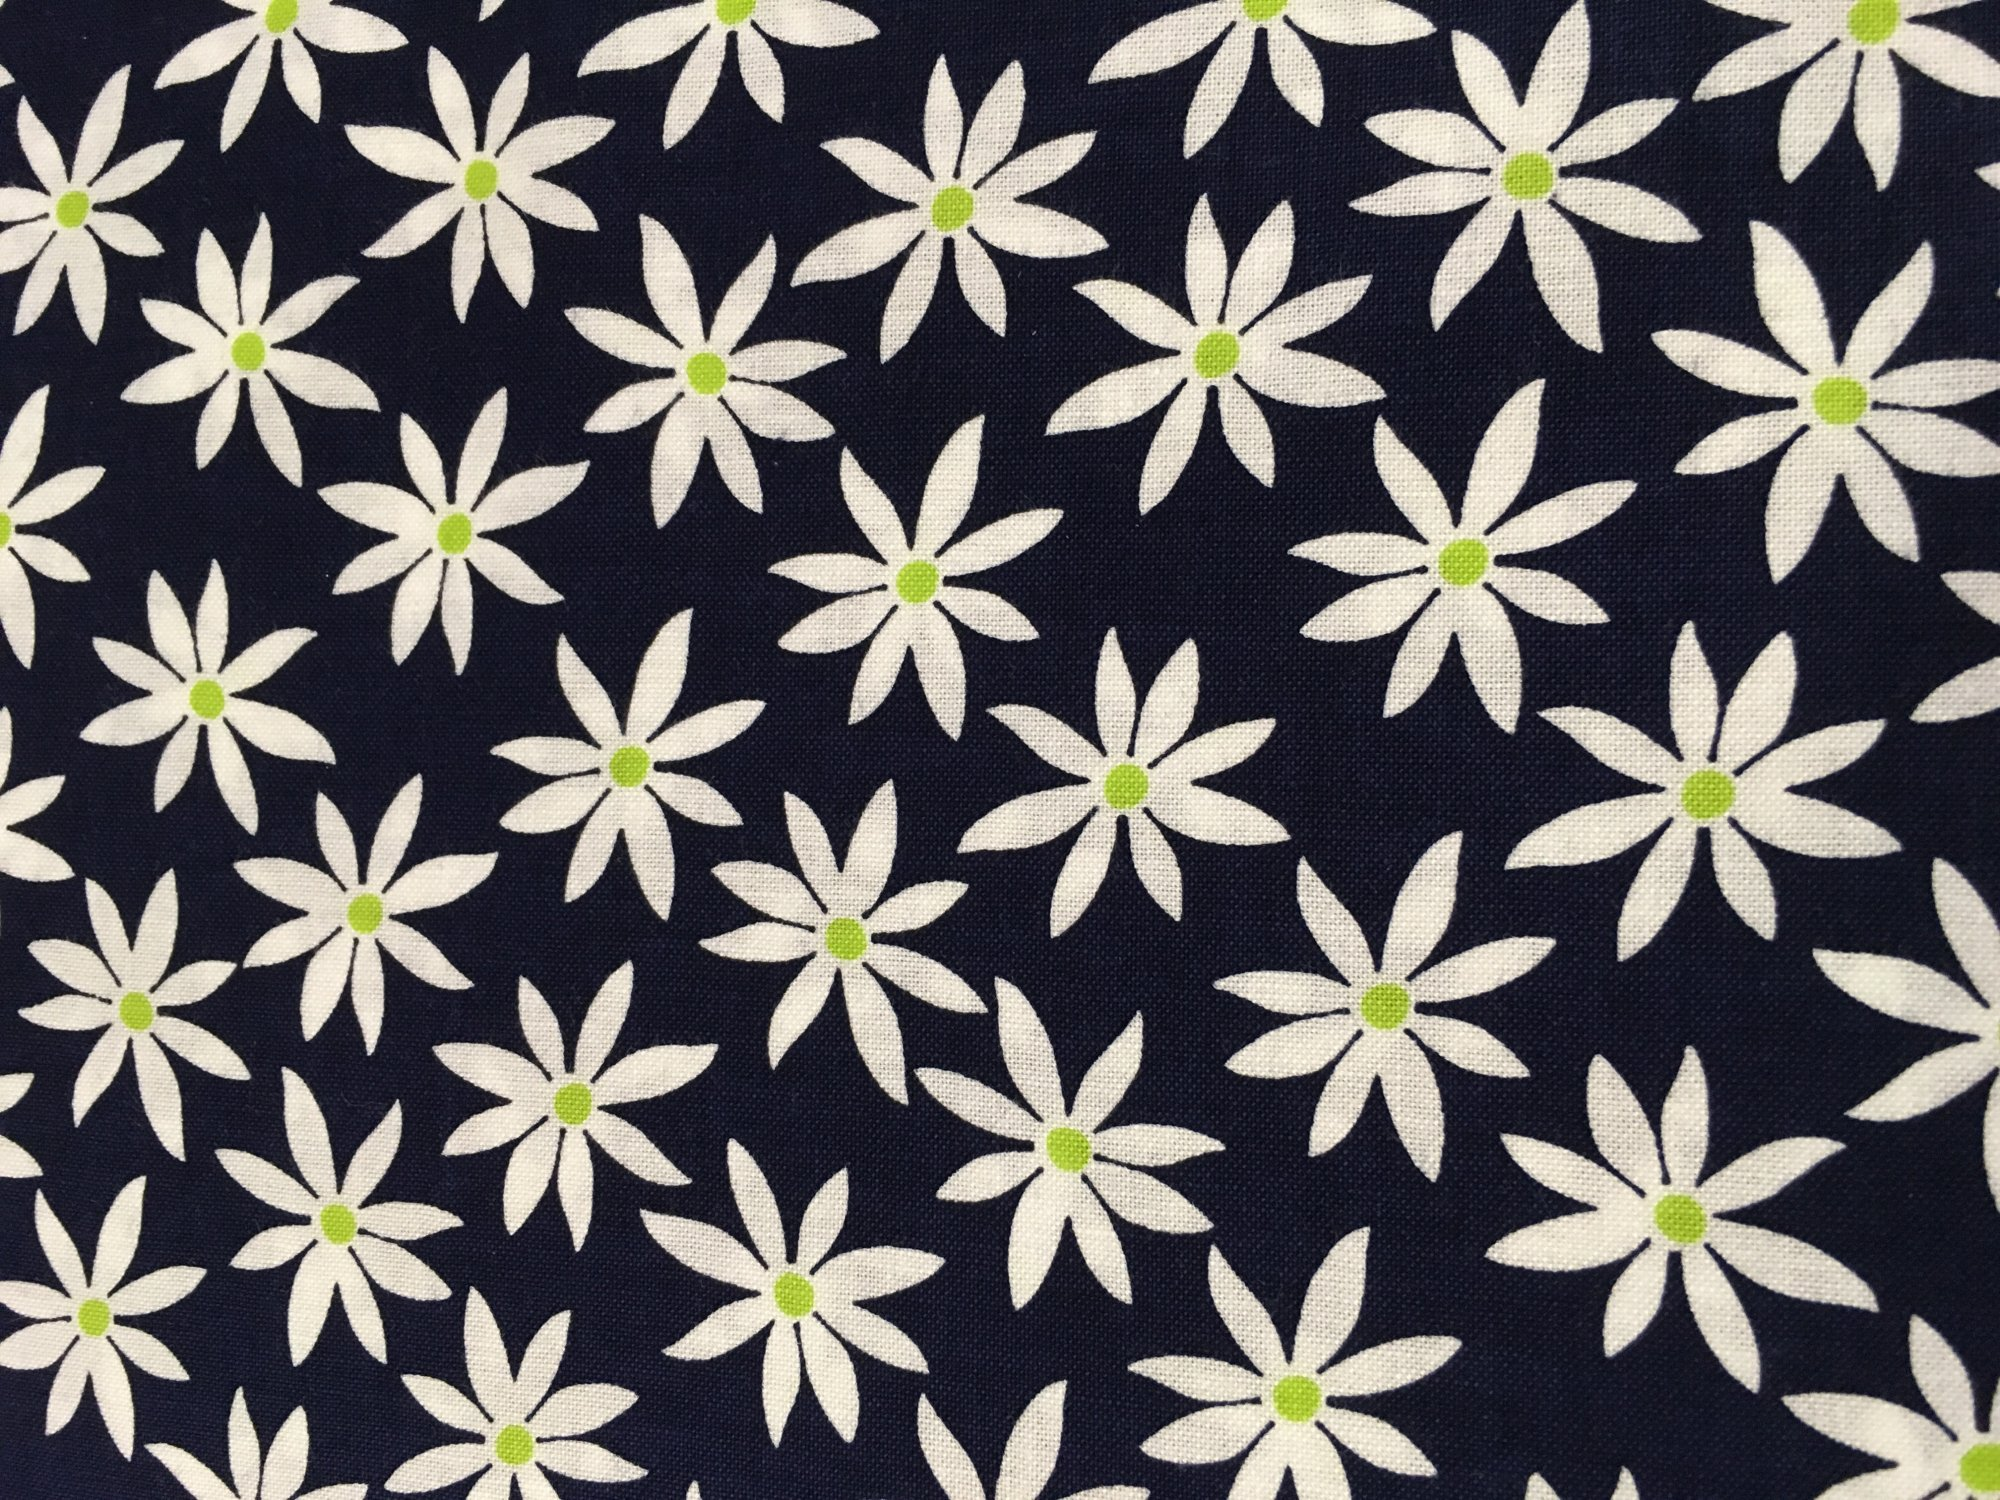 Citron Twist Black with white flowers